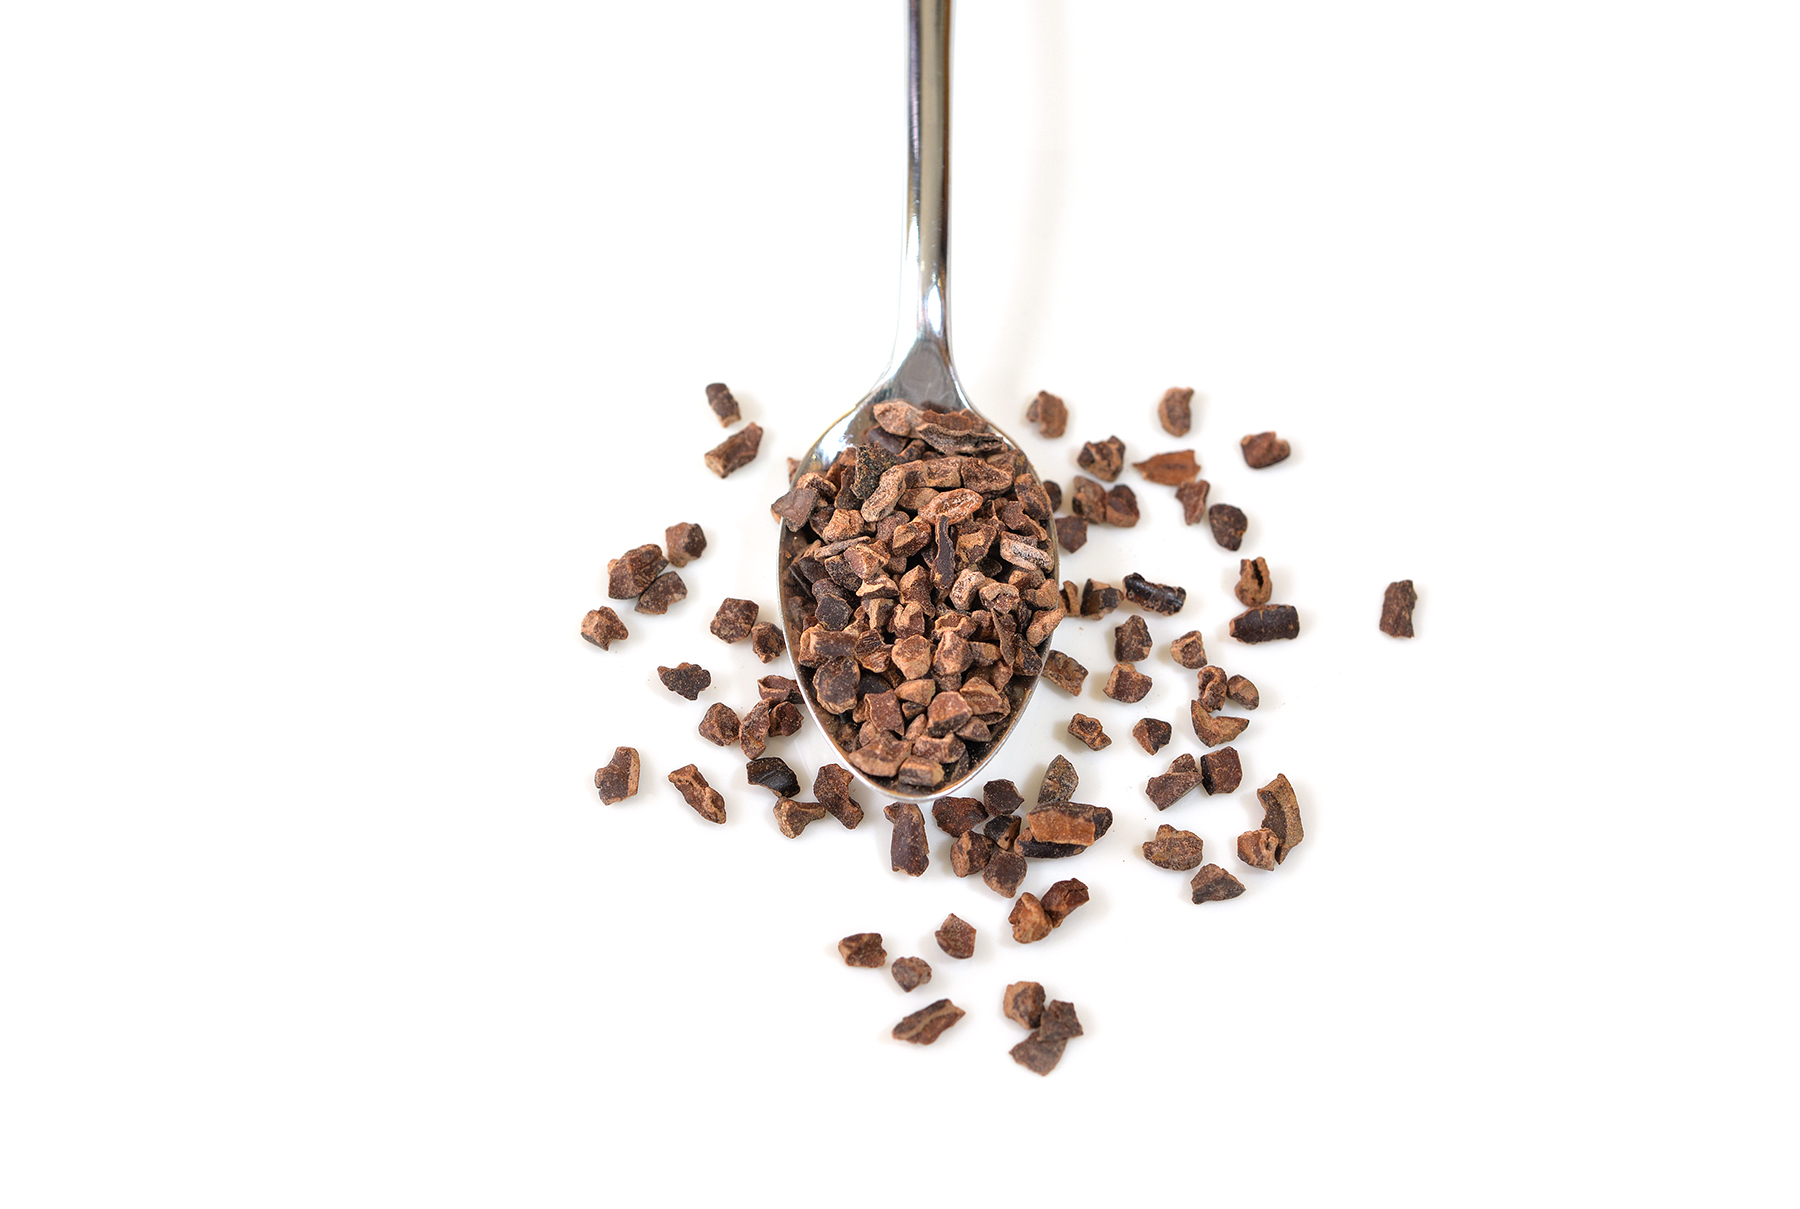 Cacao nibs on spoon